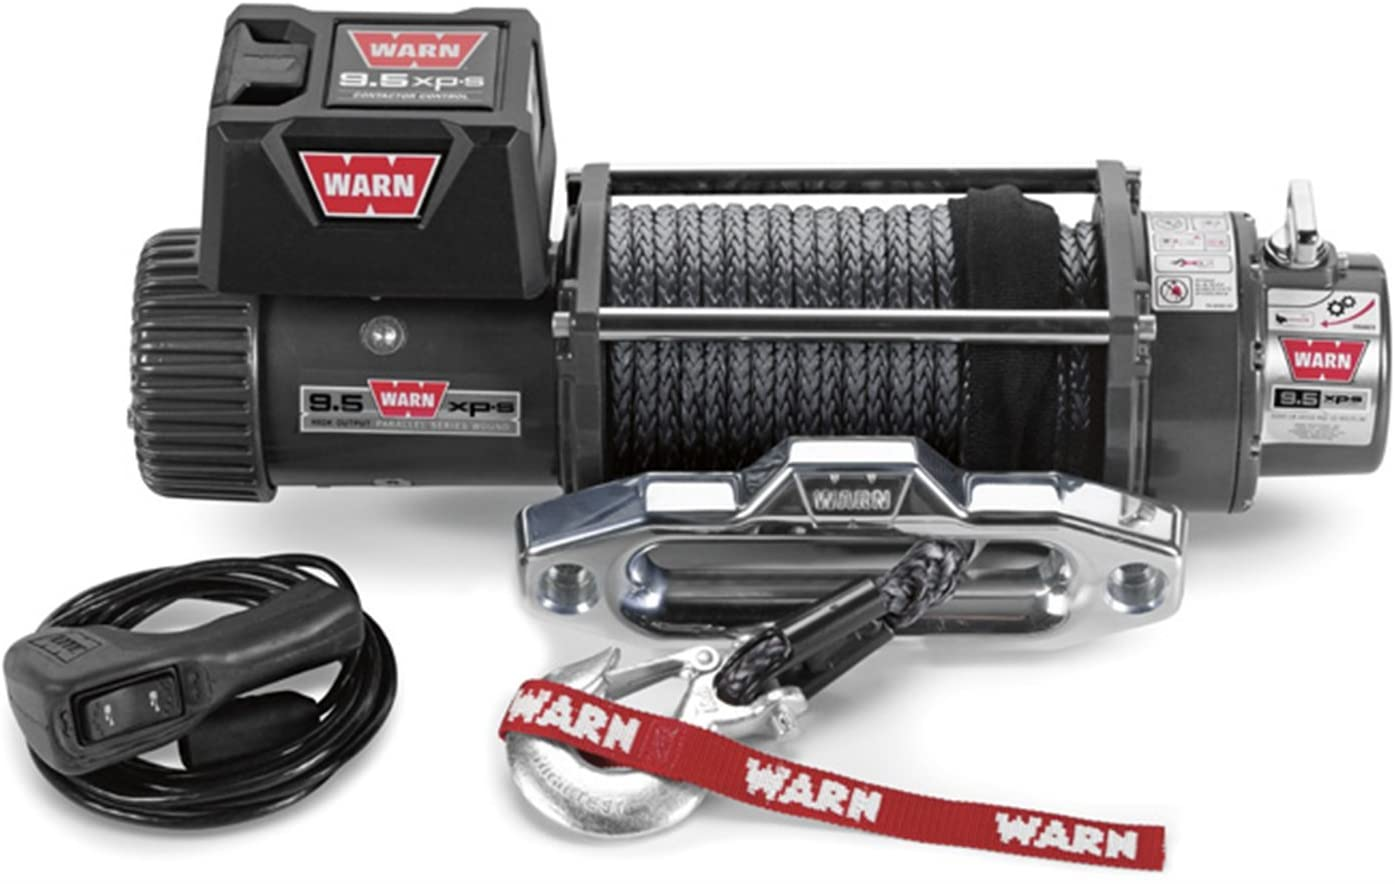 WARN 87310 Electric 12V 9.5xp-s Series Winch with Synthetic Rope: 3/8